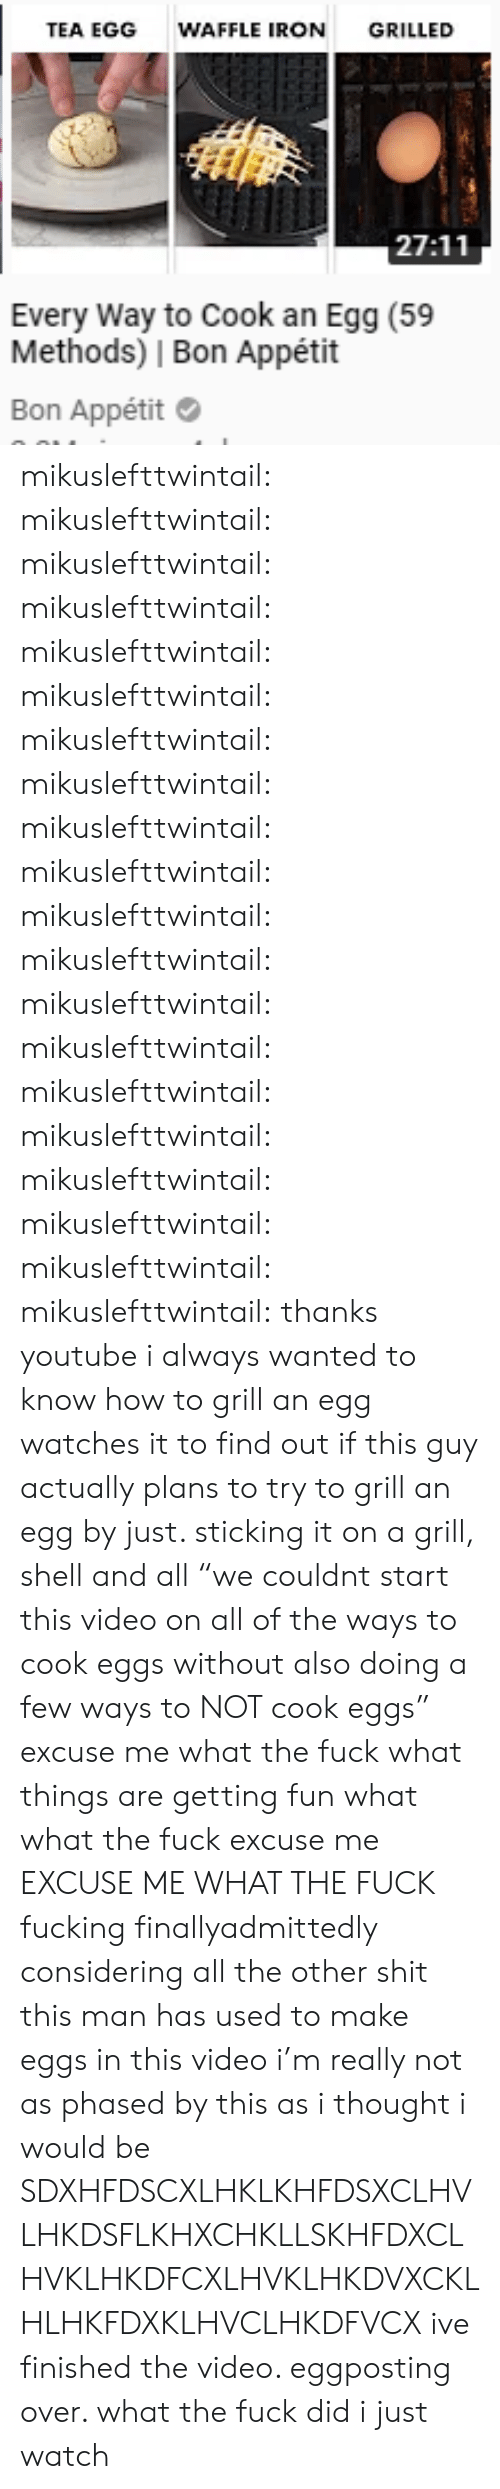 """Fucking, Shit, and Target: TEA EGG  WAFFLE IRONGRILLED  27:11  Every Way to Cook an Egg (59  Methods)   Bon Appétit  Bon Appétit mikuslefttwintail: mikuslefttwintail:  mikuslefttwintail:  mikuslefttwintail:  mikuslefttwintail:  mikuslefttwintail:  mikuslefttwintail:  mikuslefttwintail:  mikuslefttwintail:  mikuslefttwintail:  mikuslefttwintail:  mikuslefttwintail:  mikuslefttwintail:  mikuslefttwintail:  mikuslefttwintail:  mikuslefttwintail:  mikuslefttwintail:  mikuslefttwintail:  mikuslefttwintail:  mikuslefttwintail: thanks youtube i always wanted to know how to grill an egg watches it to find out if this guy actually plans to try to grill an egg by just. sticking it on a grill, shell and all  """"we couldnt start this video on all of the ways to cook eggs without also doing a few ways to NOT cook eggs"""" excuse me what the fuck      what  things are getting fun   what  what the fuck   excuse me  EXCUSE ME WHAT THE FUCK  fucking finallyadmittedly considering all the other shit this man has used to make eggs in this video i'm really not as phased by this as i thought i would be    SDXHFDSCXLHKLKHFDSXCLHVLHKDSFLKHXCHKLLSKHFDXCLHVKLHKDFCXLHVKLHKDVXCKLHLHKFDXKLHVCLHKDFVCX  ive finished the video. eggposting over. what the fuck did i just watch"""